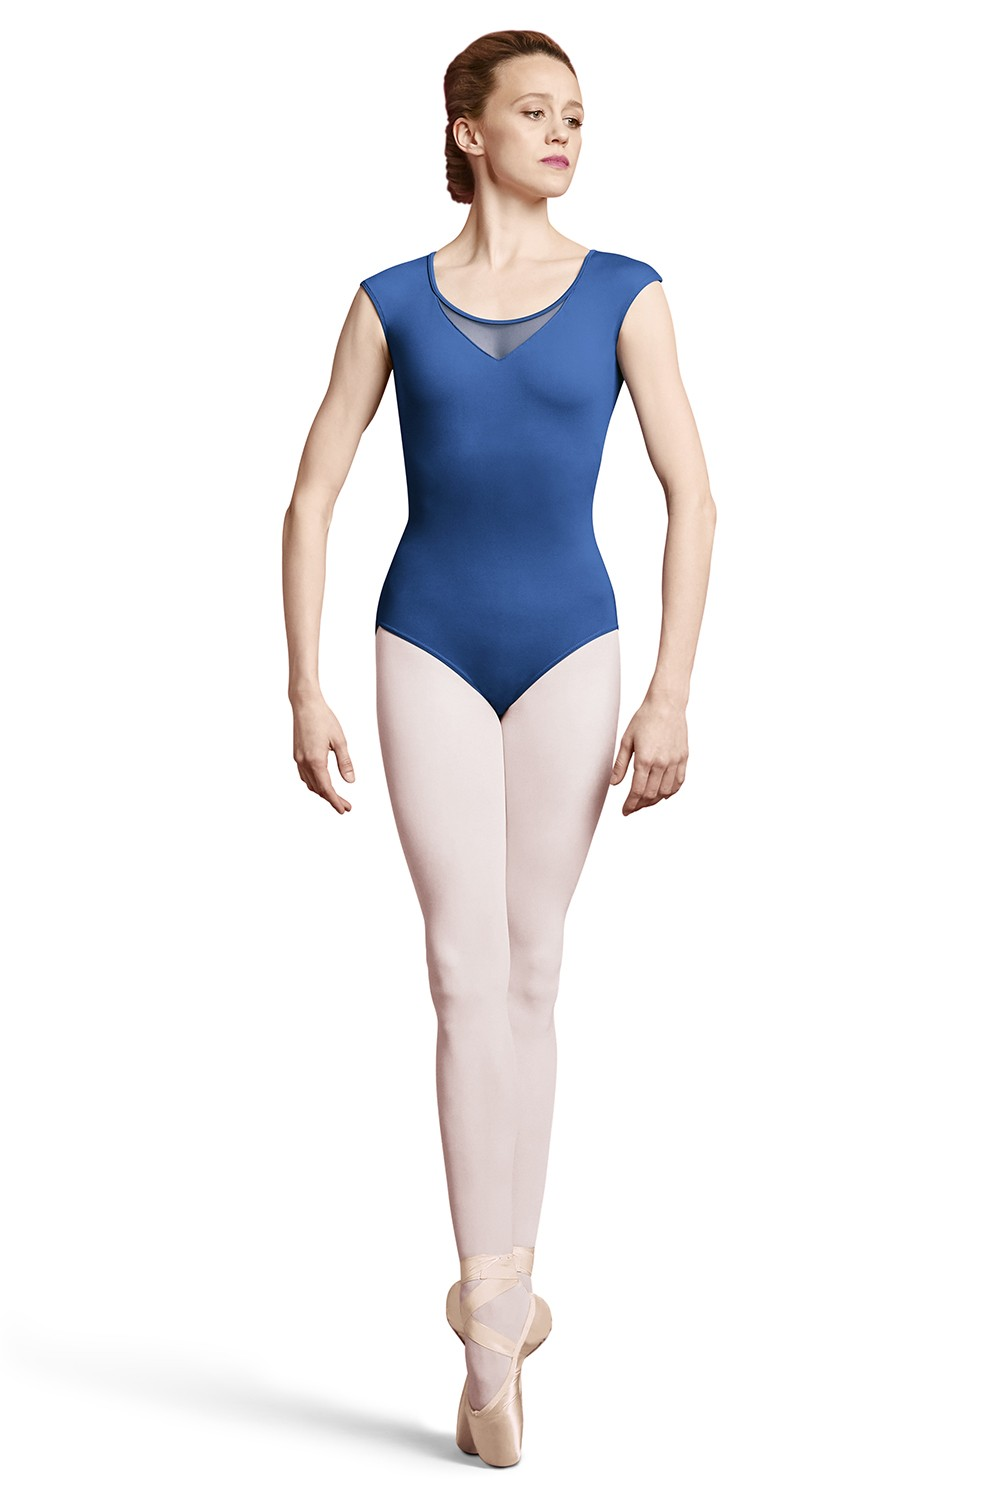 Damocles Womens Short Sleeve Leotards